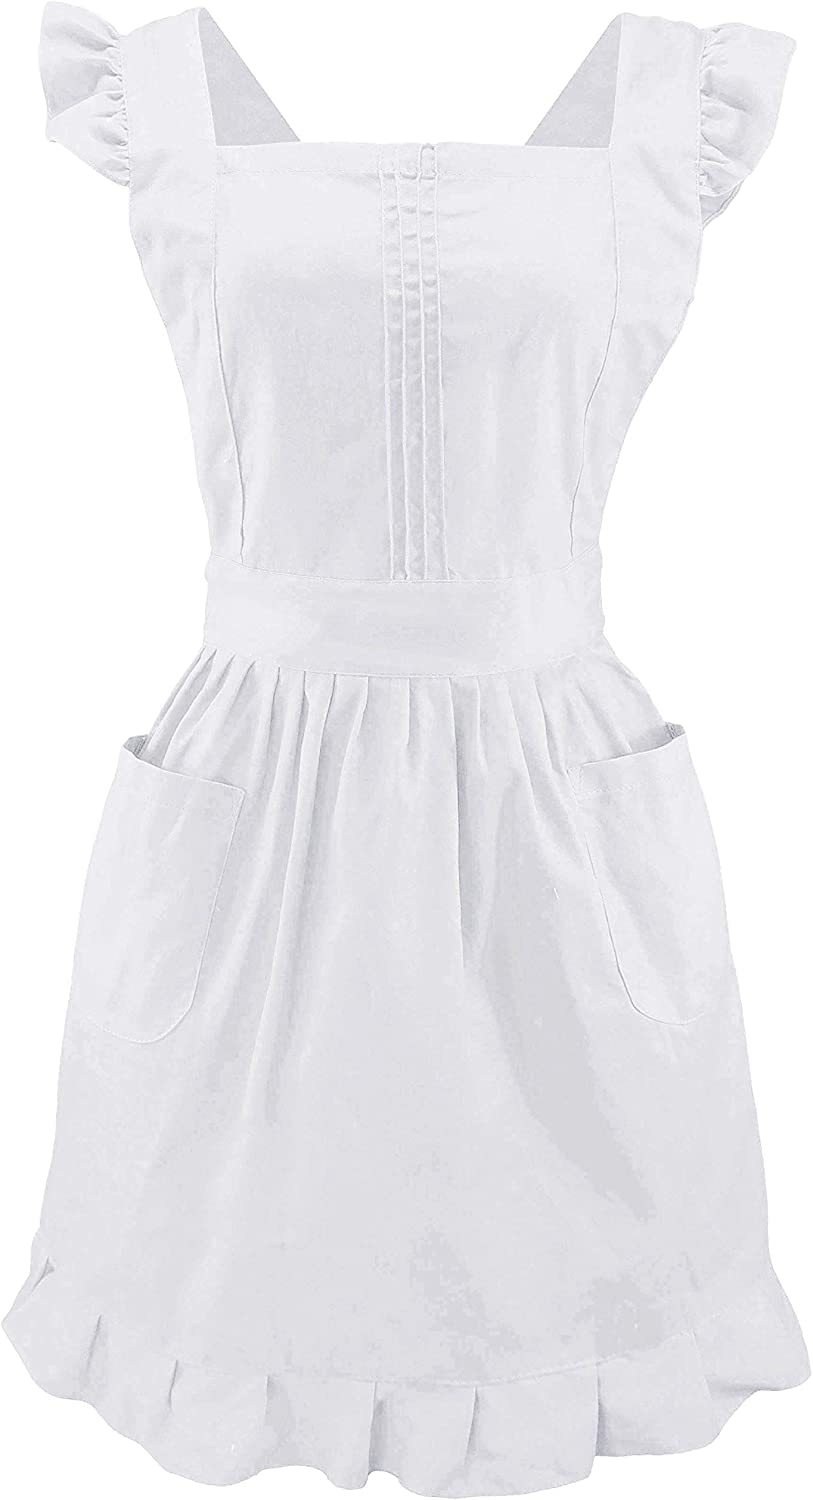 LilMents Retro Adjustable Ruffle Apron with Pockets, Small to Plus Size Ladies (White): Home & Kitchen